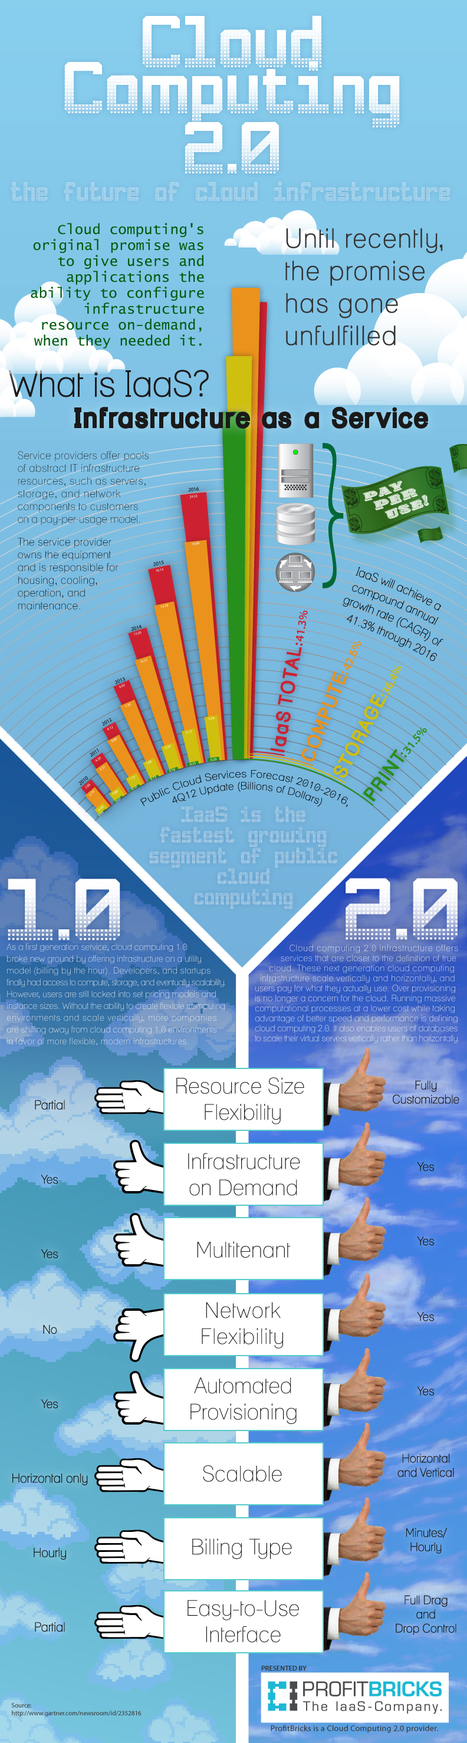 INFOGRAPHIC: Cloud Computing 2.0 | Personal Branding and Professional networks | Scoop.it